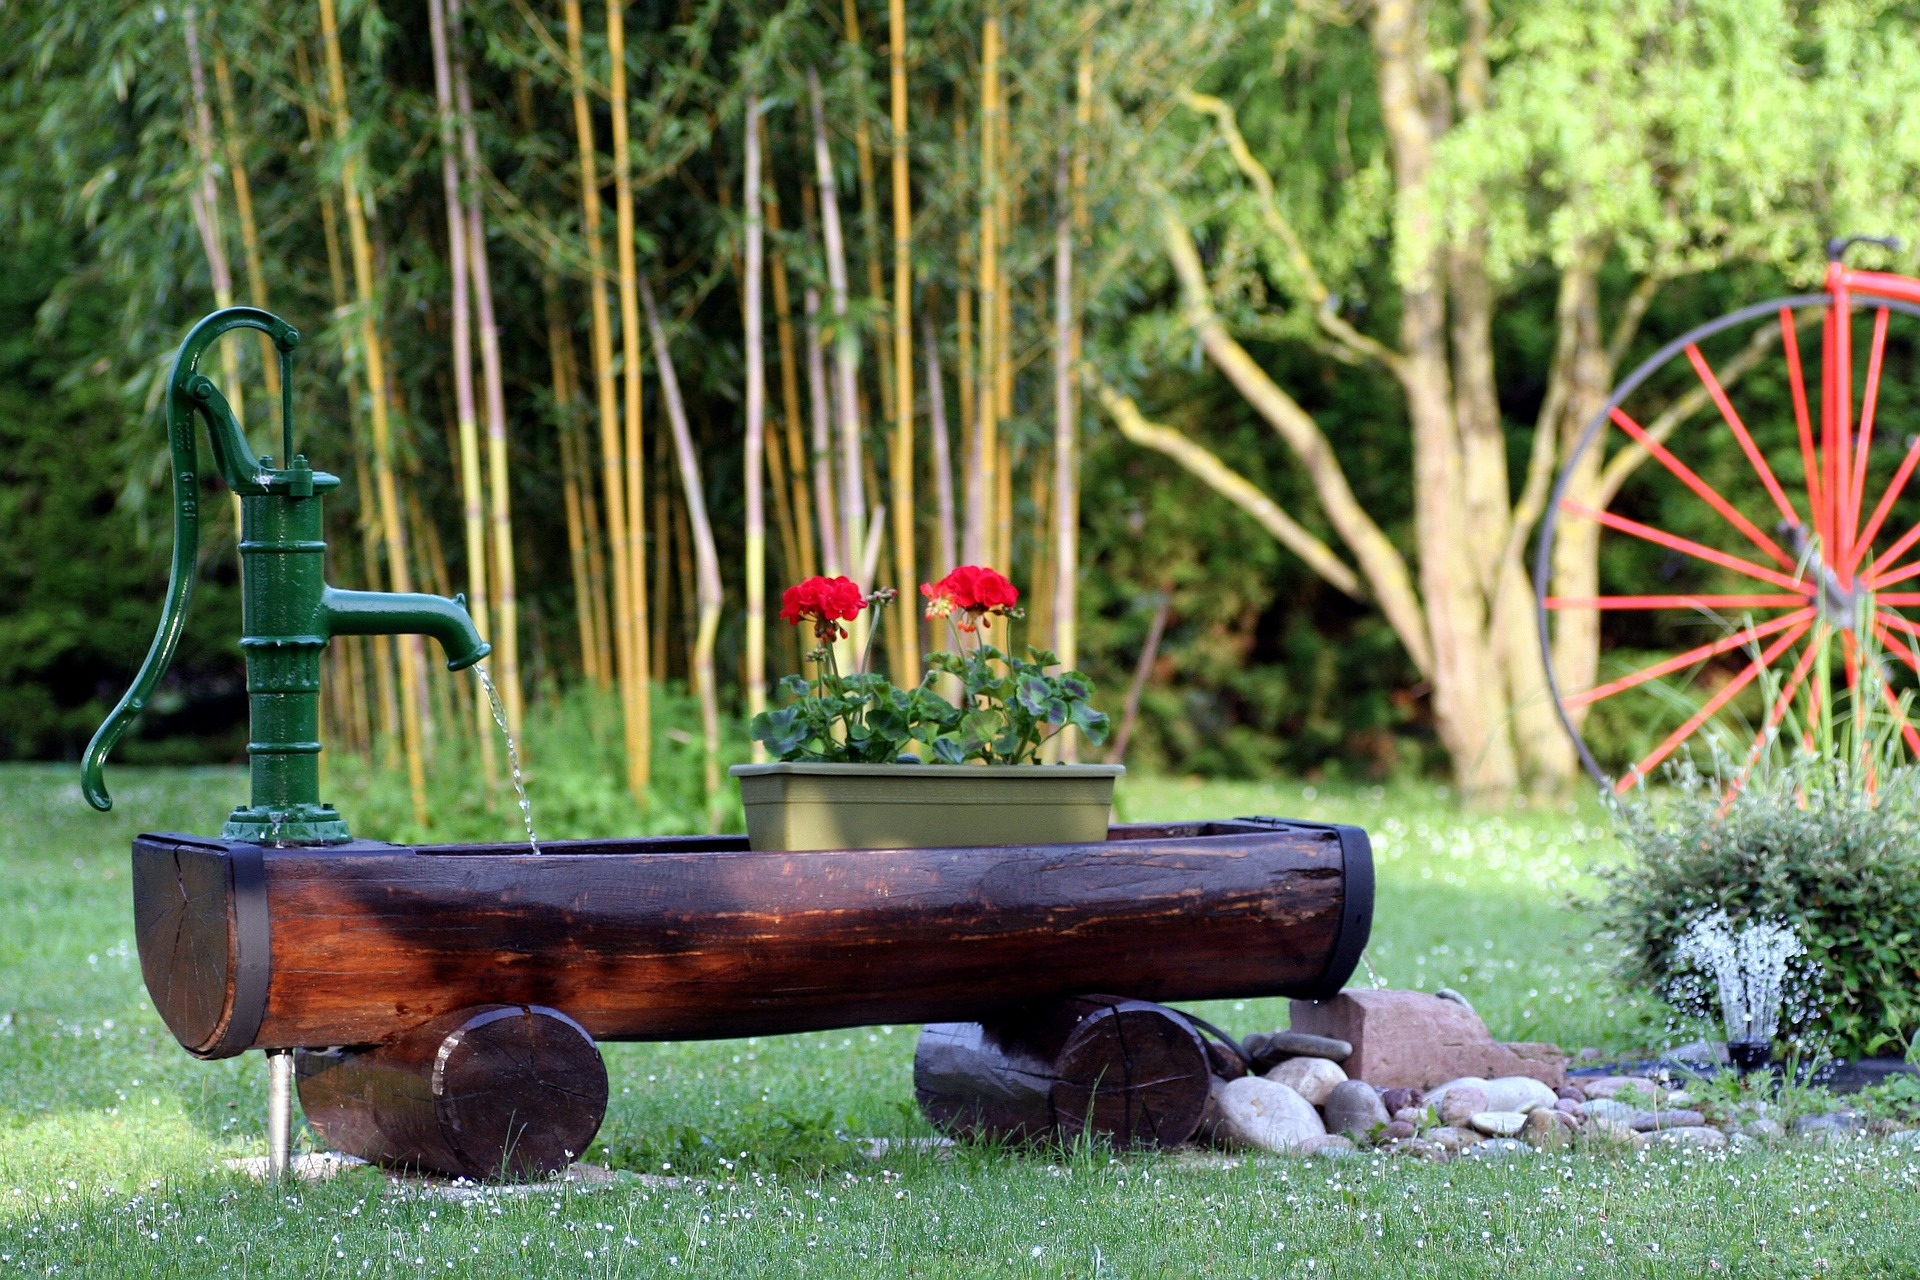 garden care and irrigation